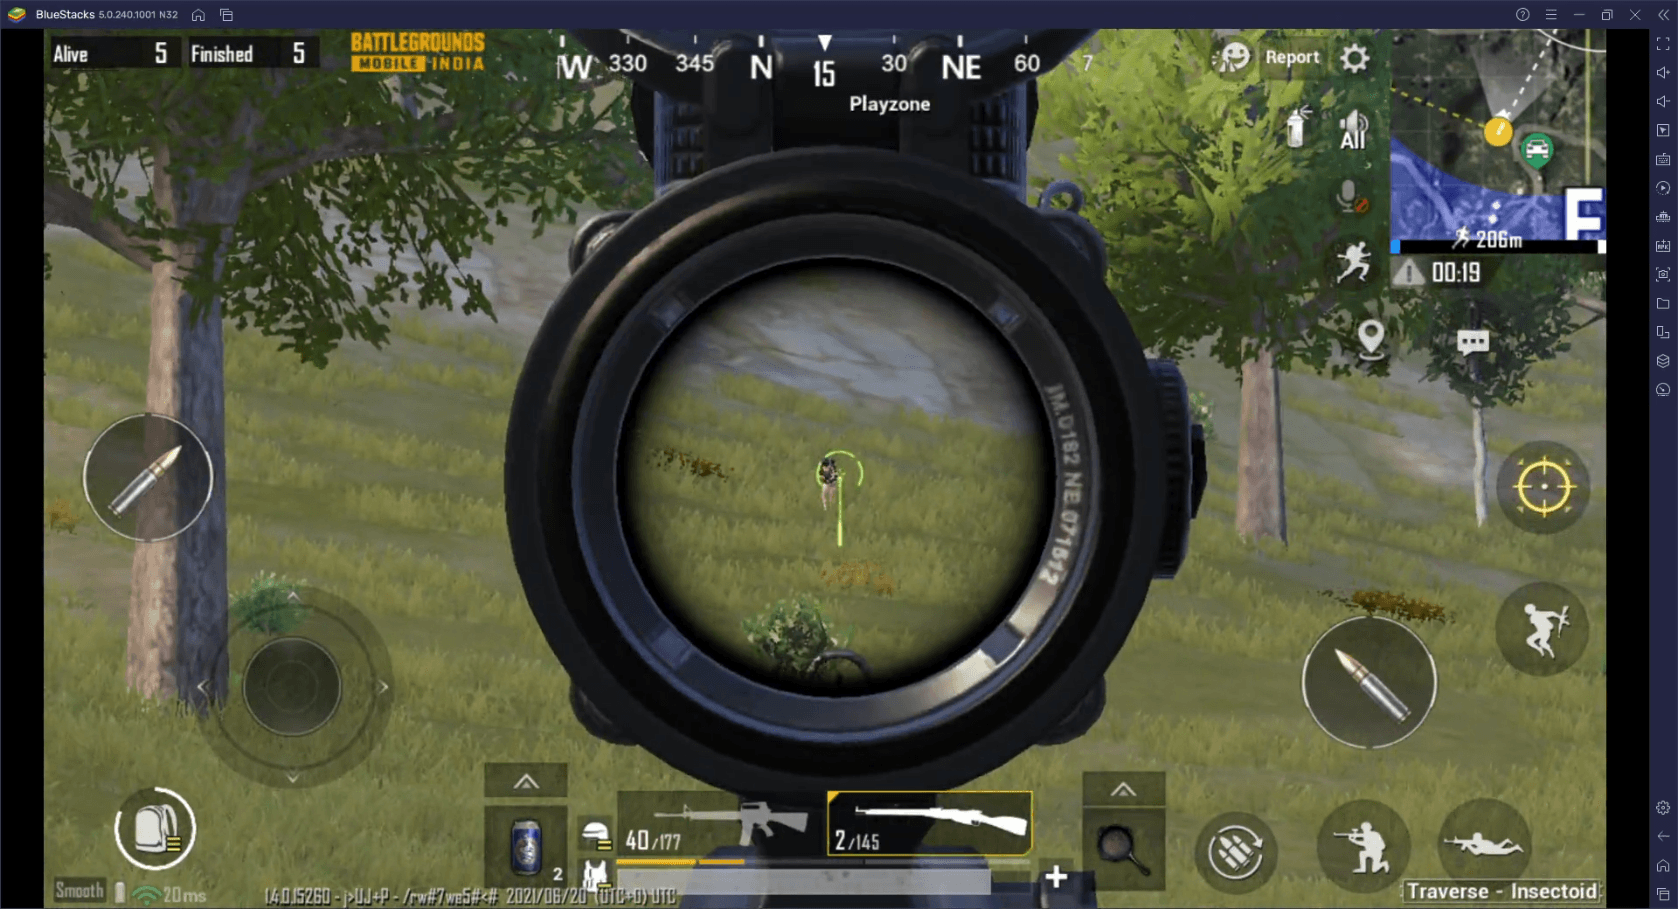 Battlegrounds Mobile India – The Best BGMI Tips and Tricks For Winning Endless Chicken Dinners